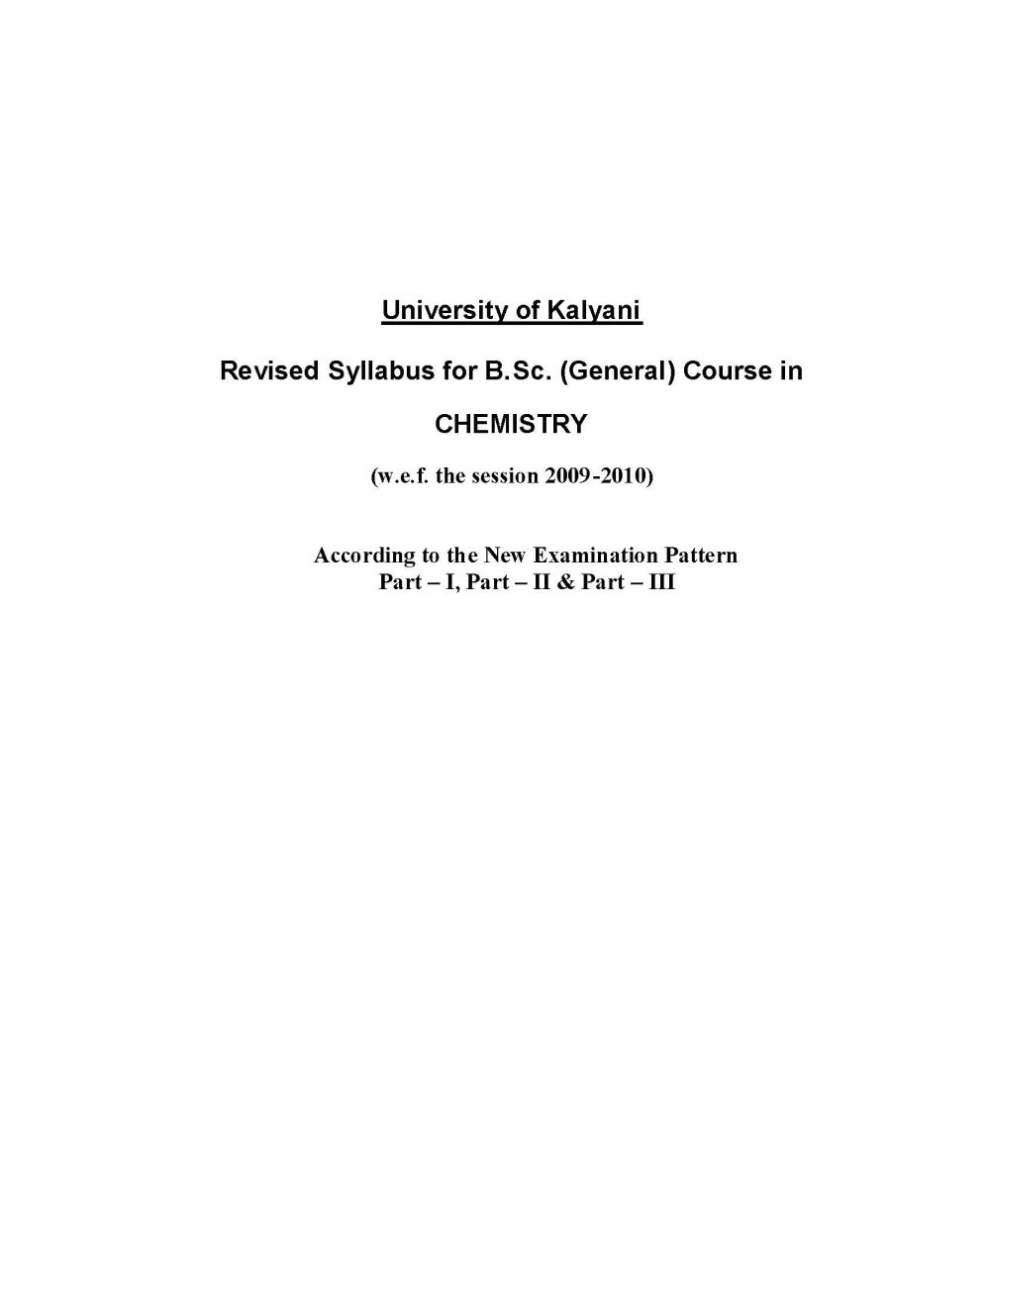 kalyani university chemistry pass syllabus student forum attached kalyani university b sc chemistry syllabus pdf 40 8 kb